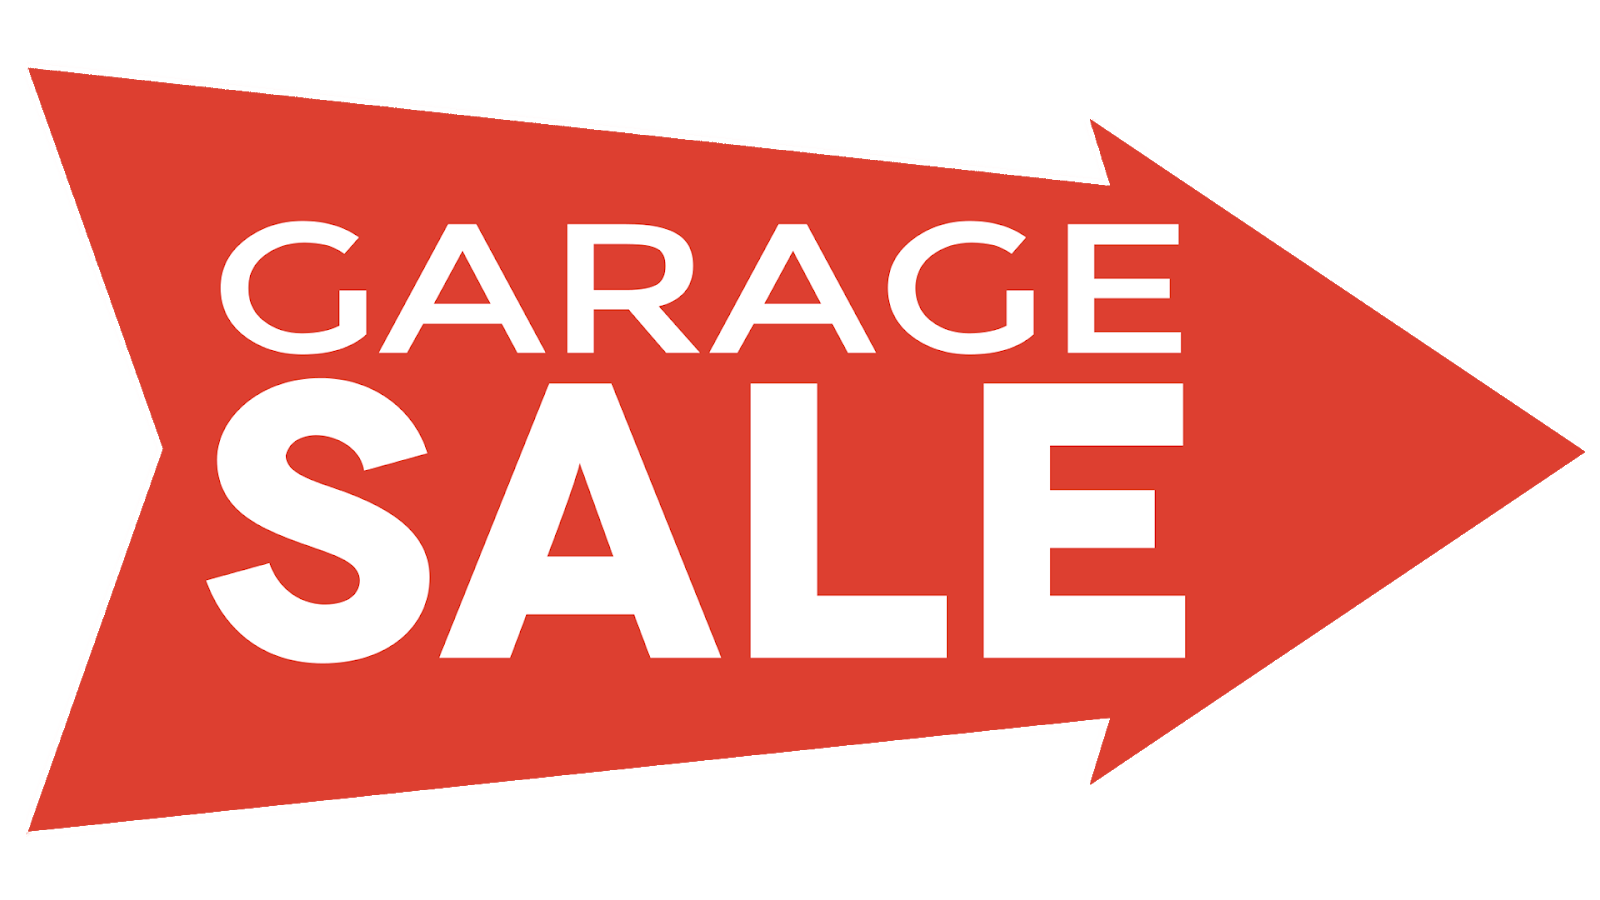 small resolution of download large image garage sale fundraiser goal thermometer